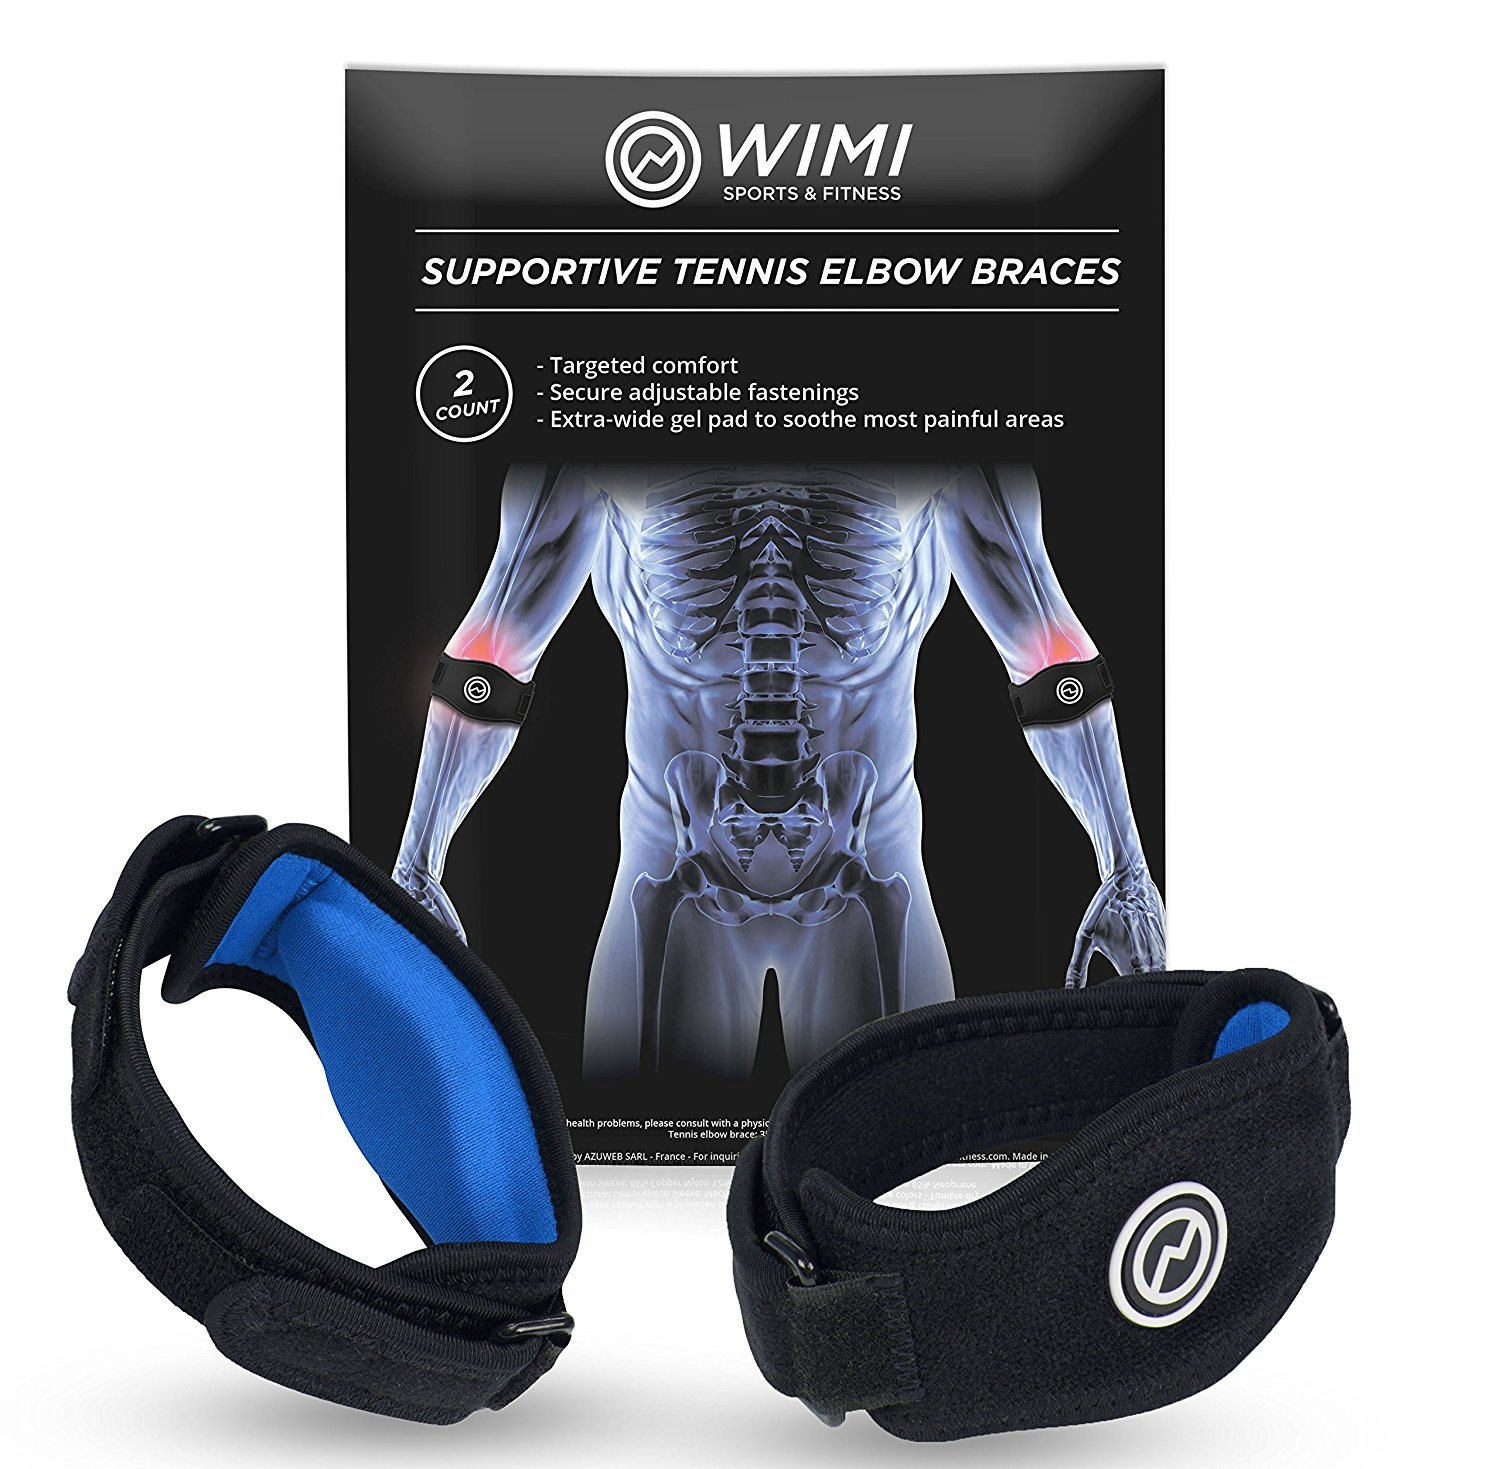 ff281aec9f 2-Pack Tennis Elbow Brace with Compression Pad by WIMI Sports - Best ...